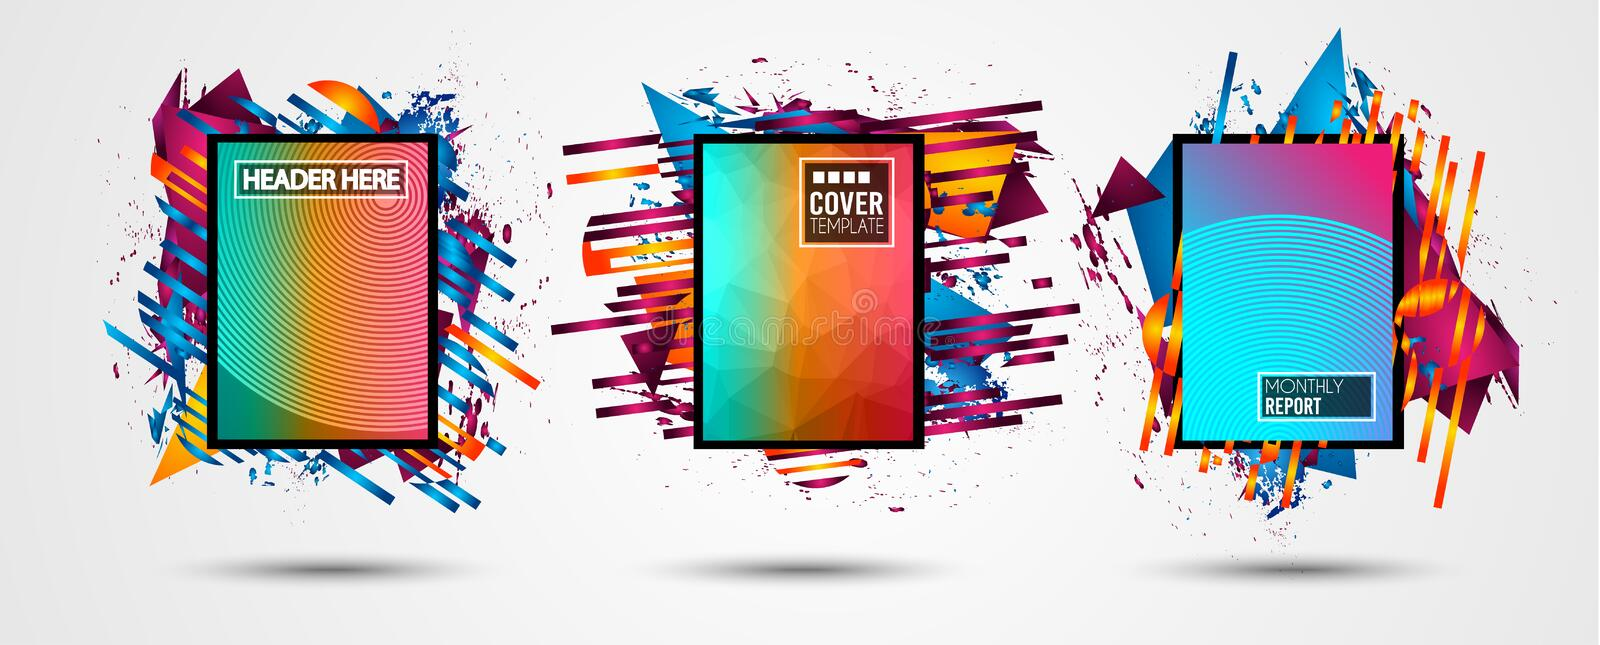 Futuristic Frame Art Design with Abstract shapes and drops of colors behind the space for text. Modern Artistic flyer or party tha royalty free illustration